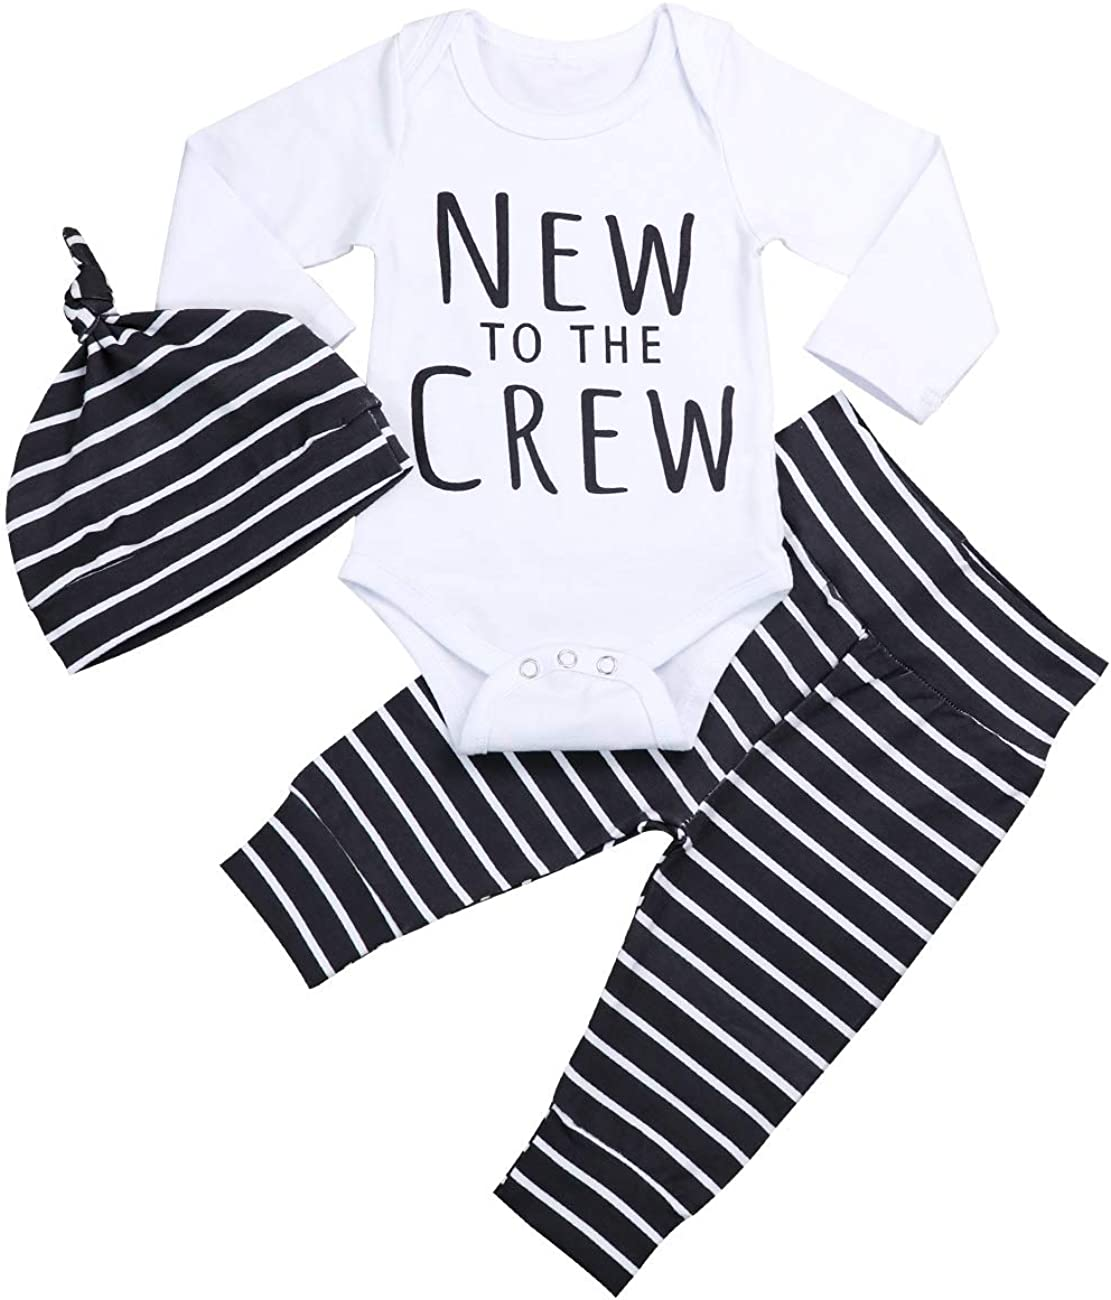 Newborn Baby Boy Clothes New to The Crew Romper Long Sleeve Striped Pants and Cute Hat Outfit Set 3PCS 0-3 Months Gray